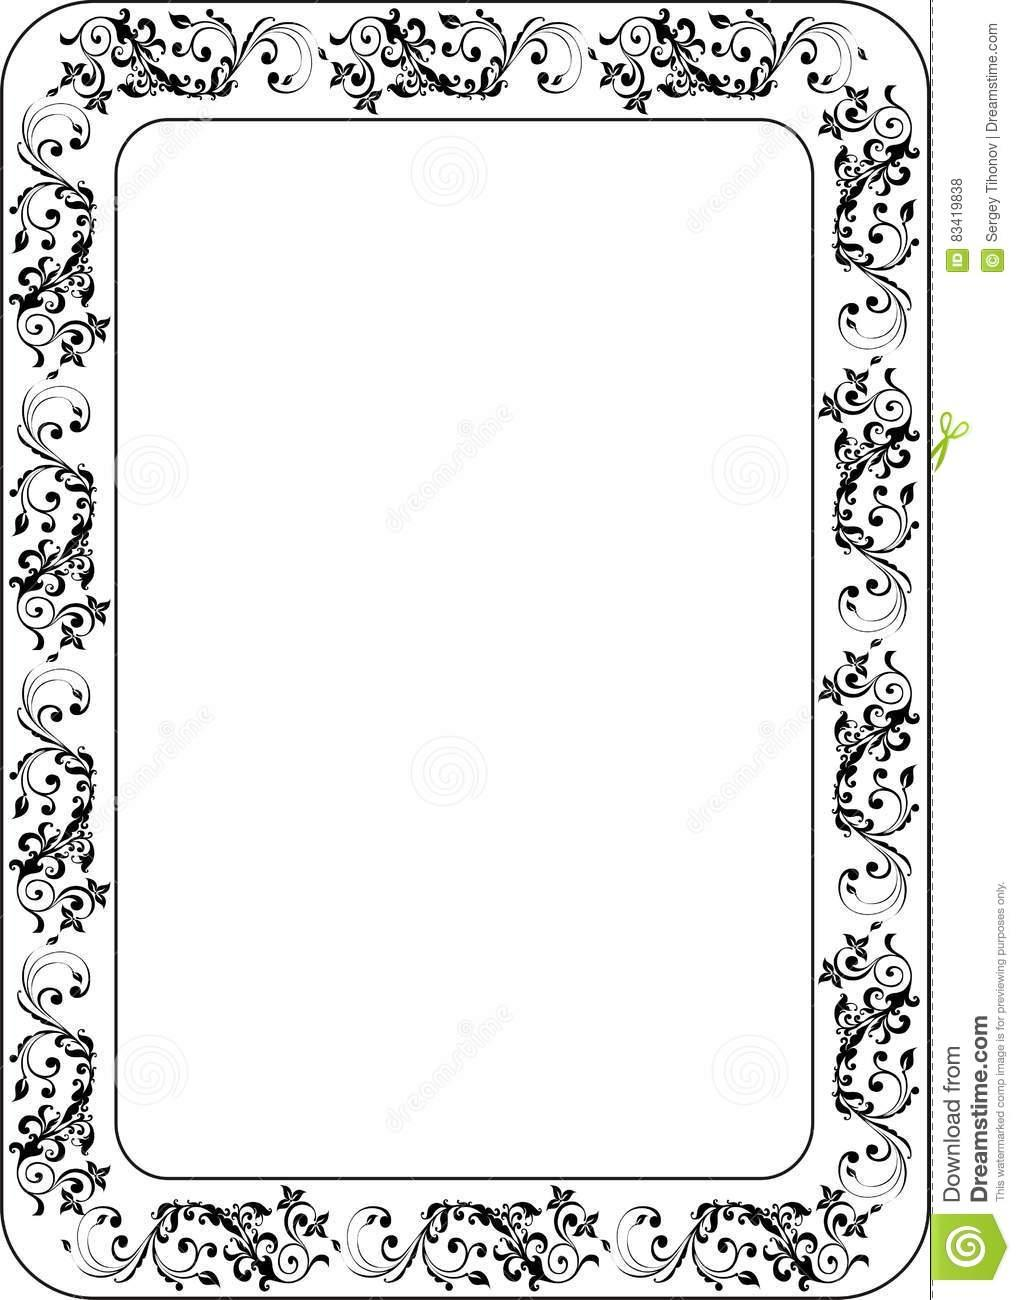 Back Of Stock Certificate Template